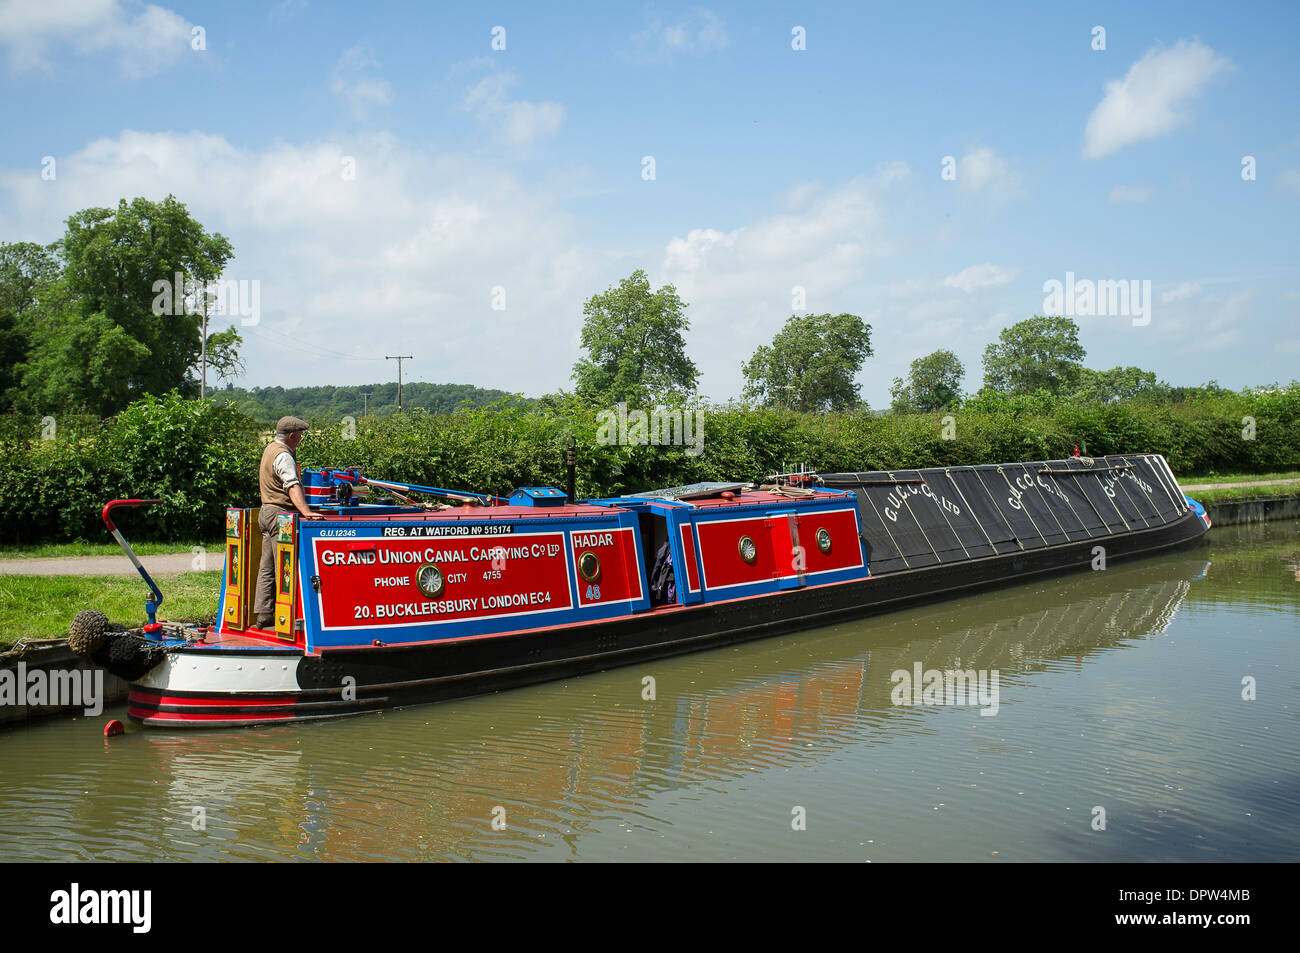 Barge on an English canal. - Stock Image